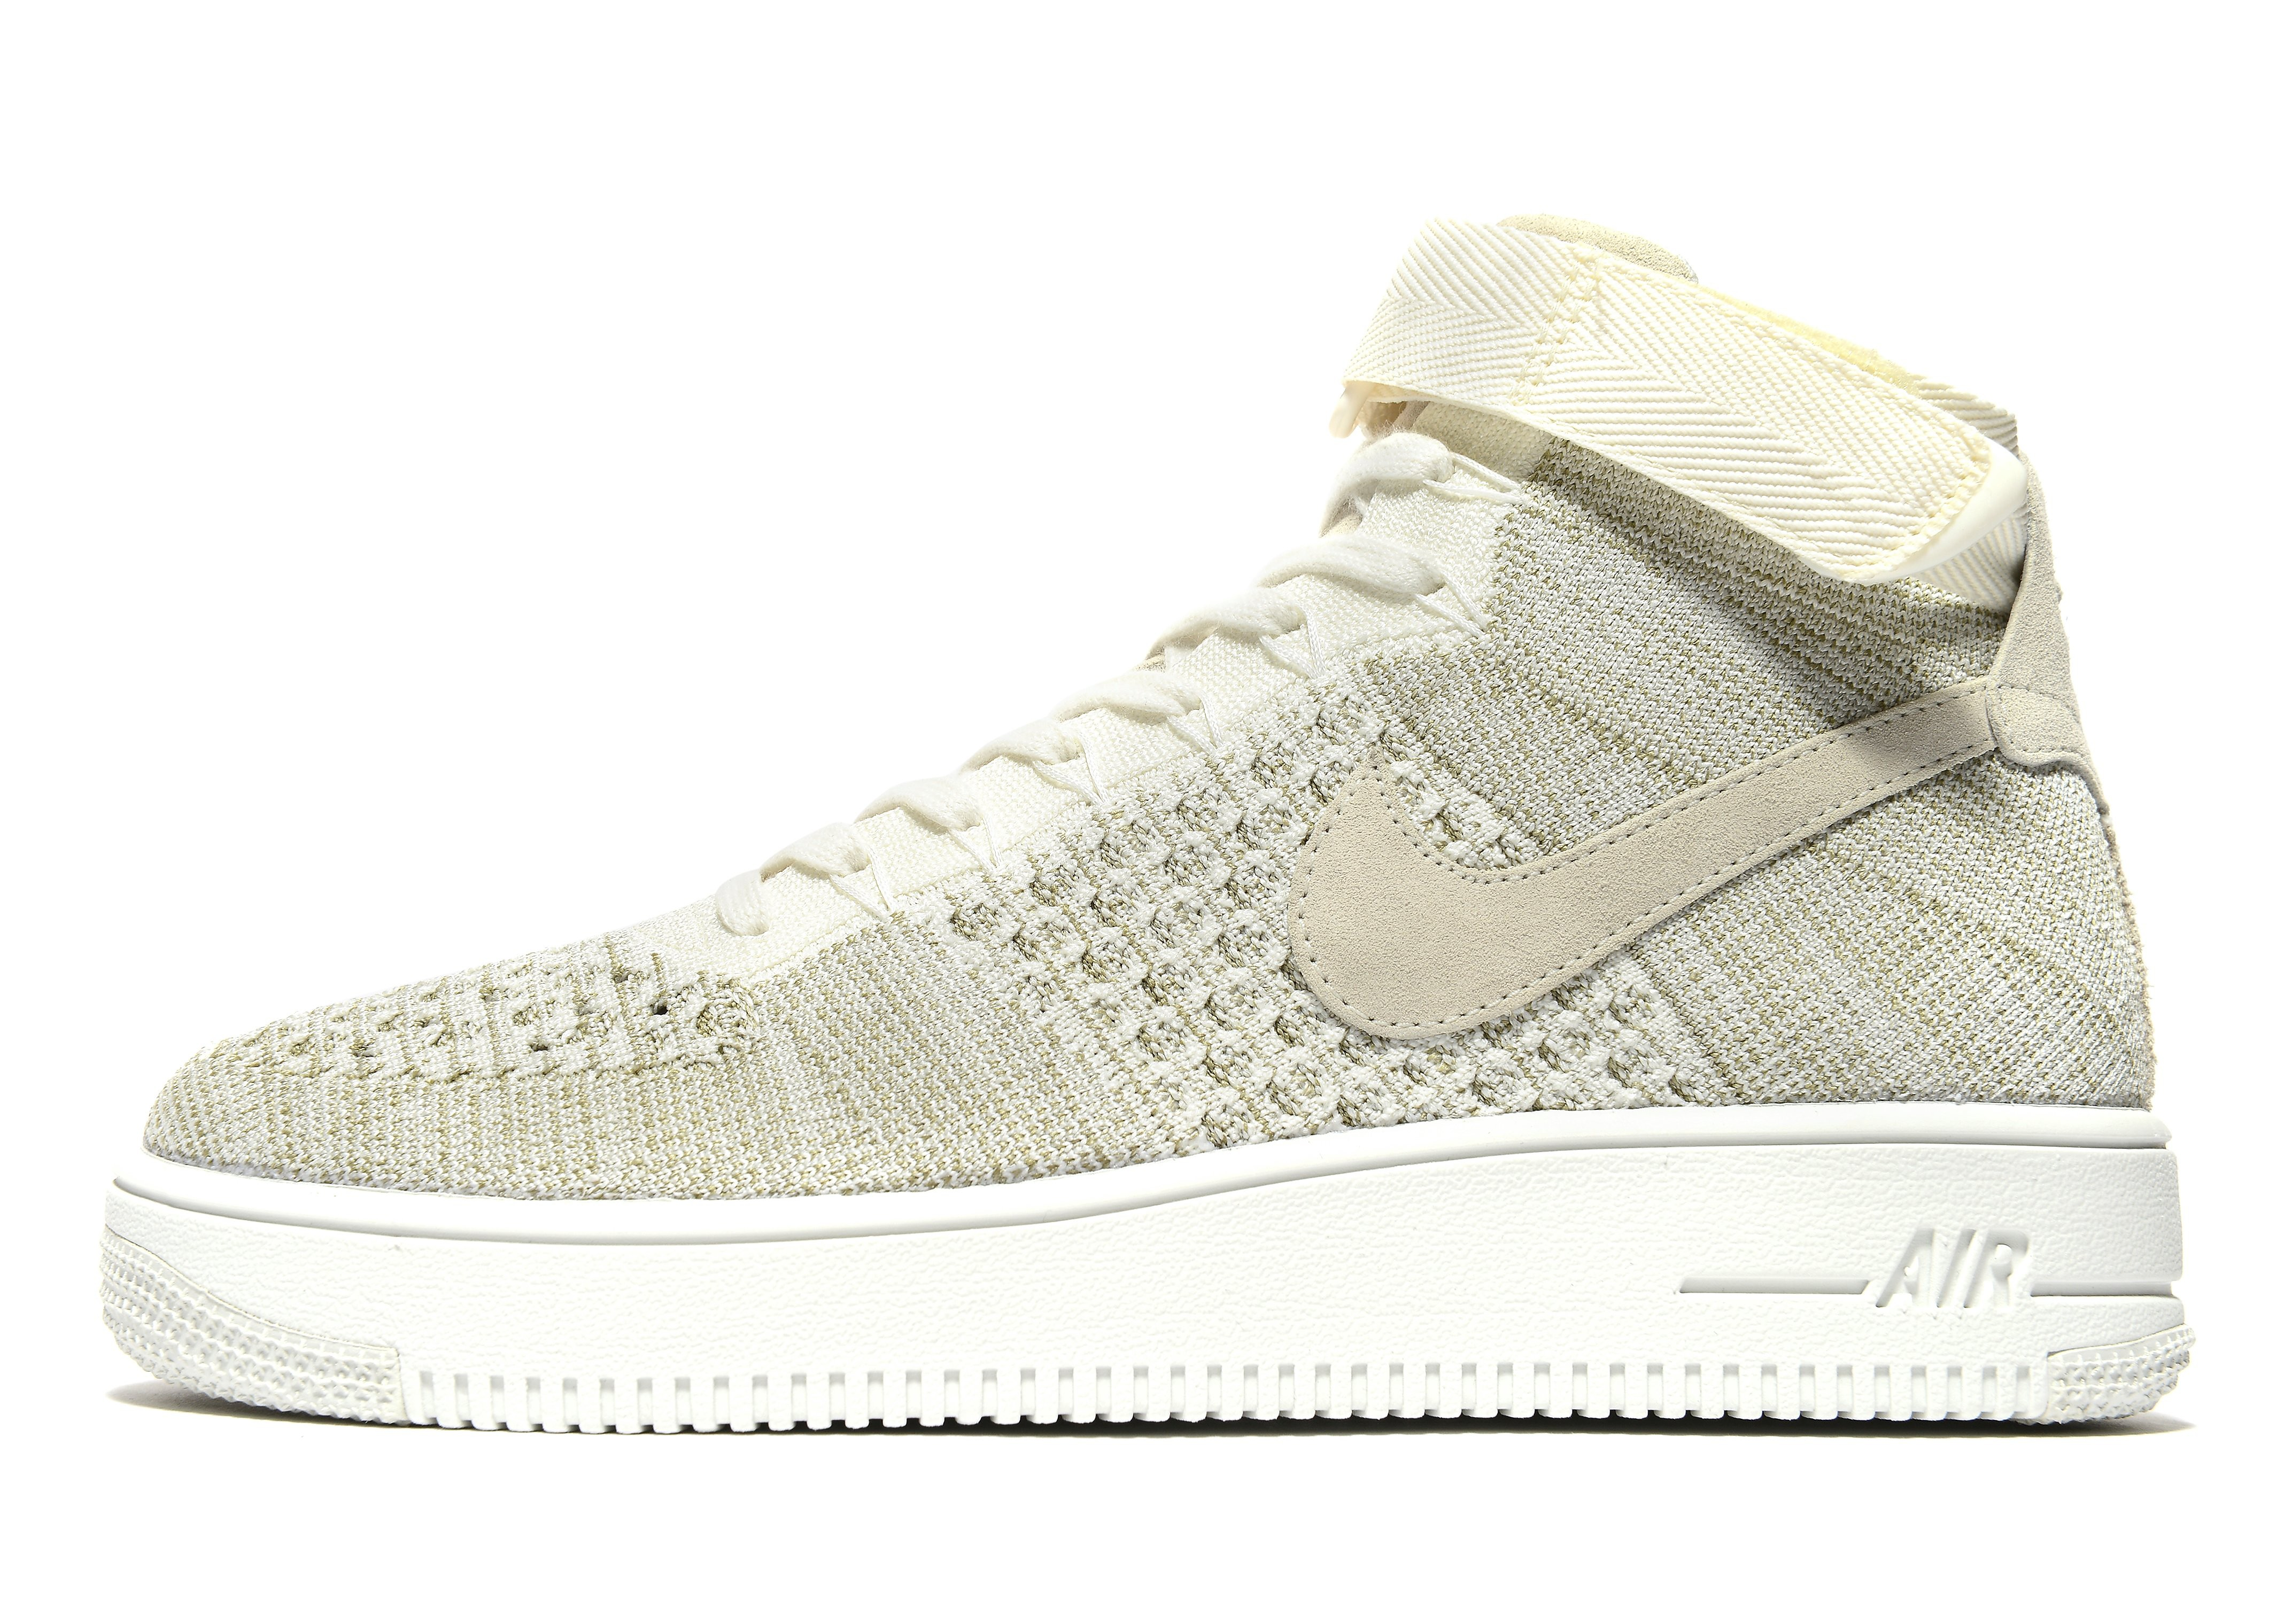 Nike Air Force 1 Mid Ultra Flyknit